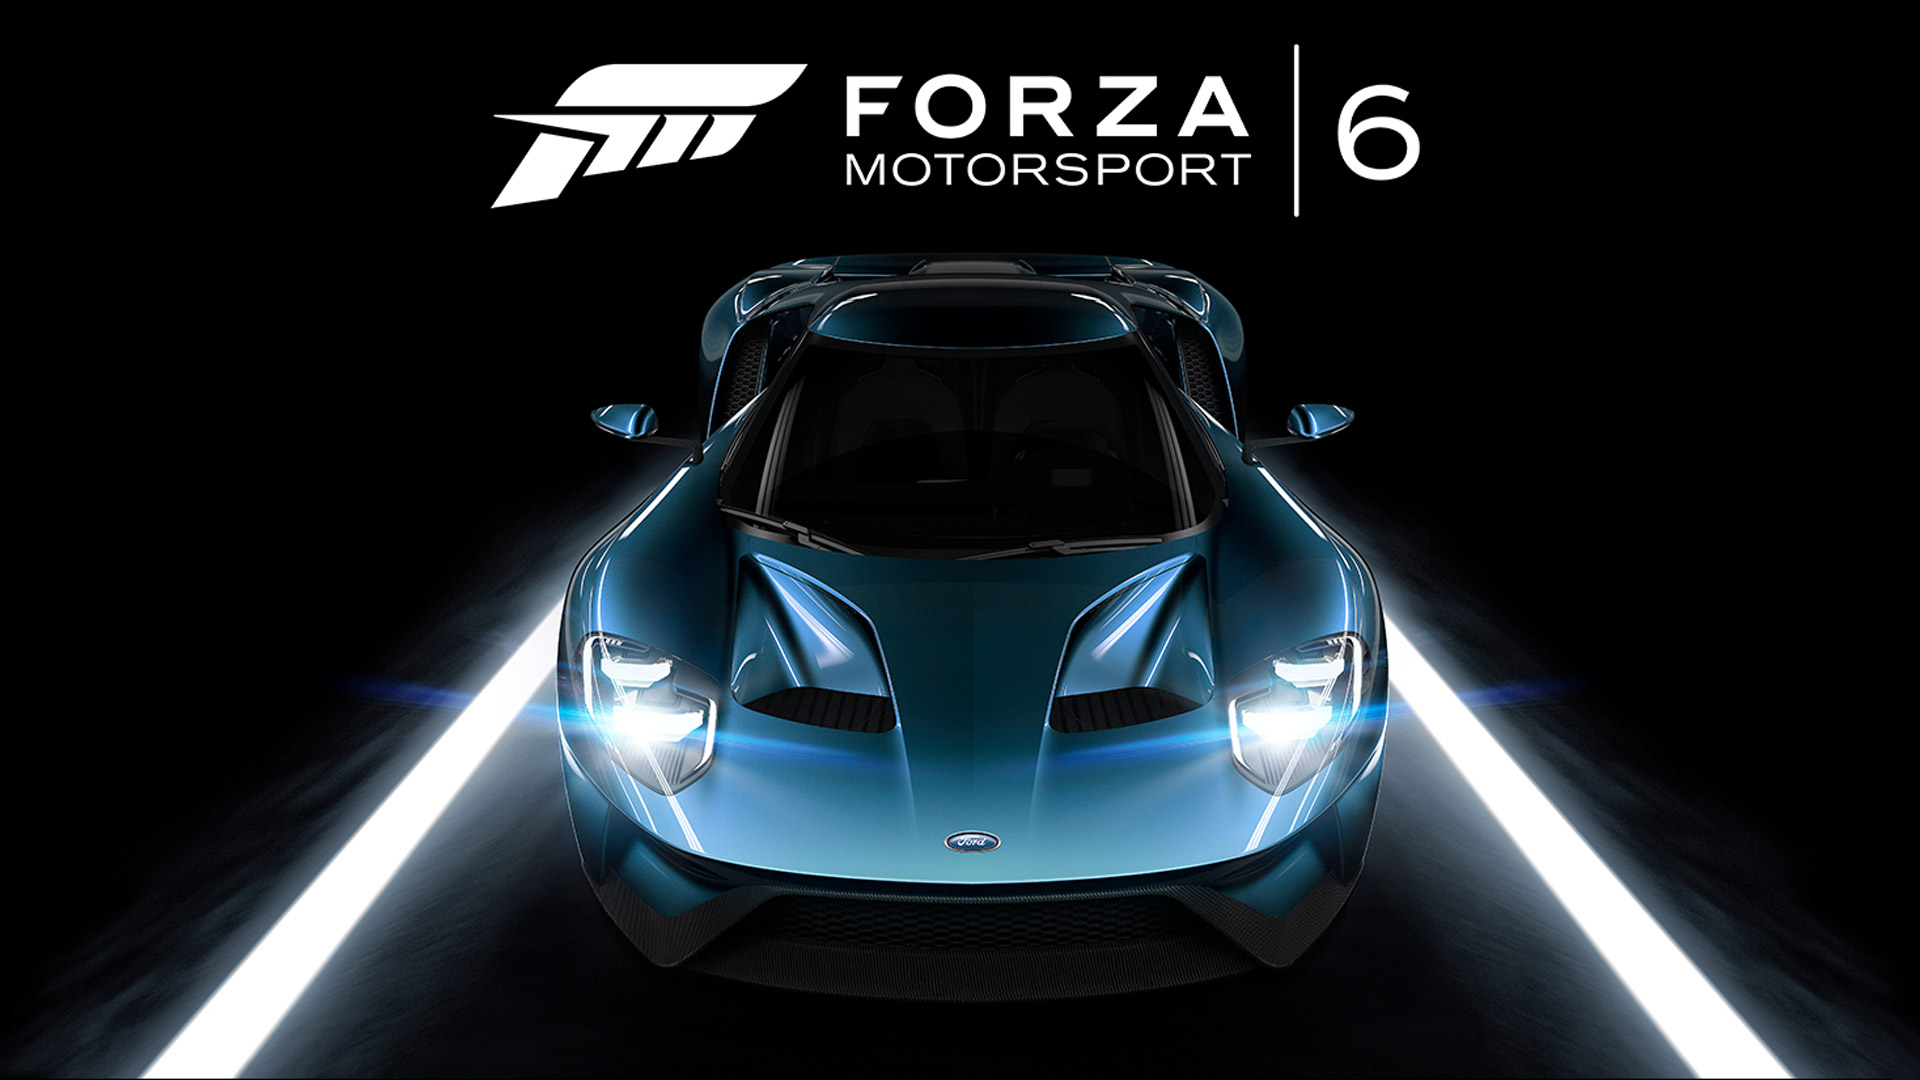 Forza Motorsport 6 Wallpaper in 1920x1080